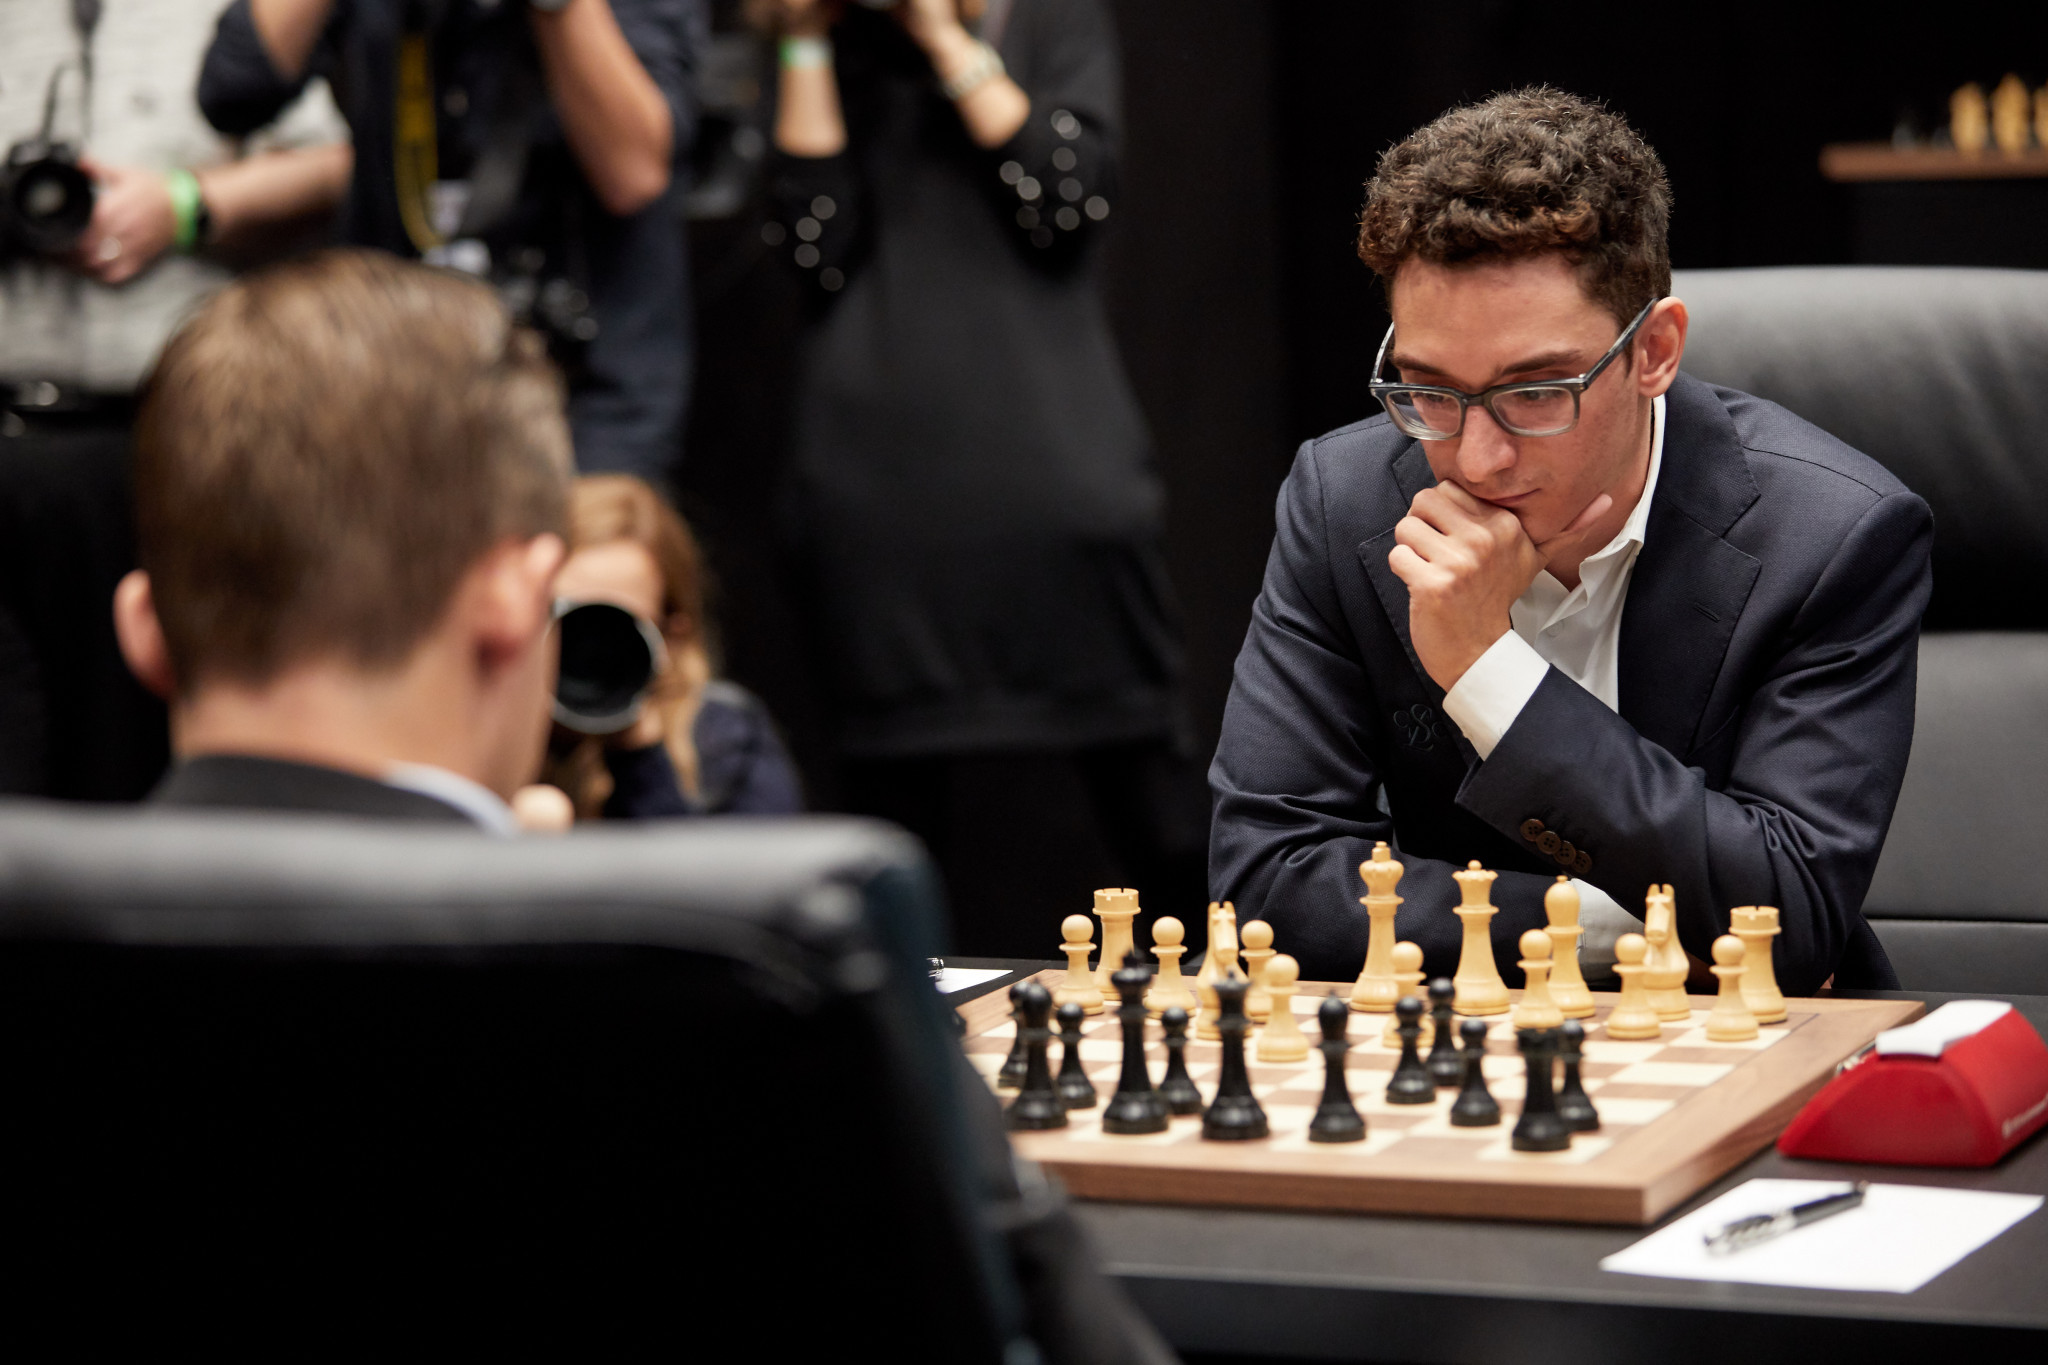 Deadlock continues in men's World Chess Championship final